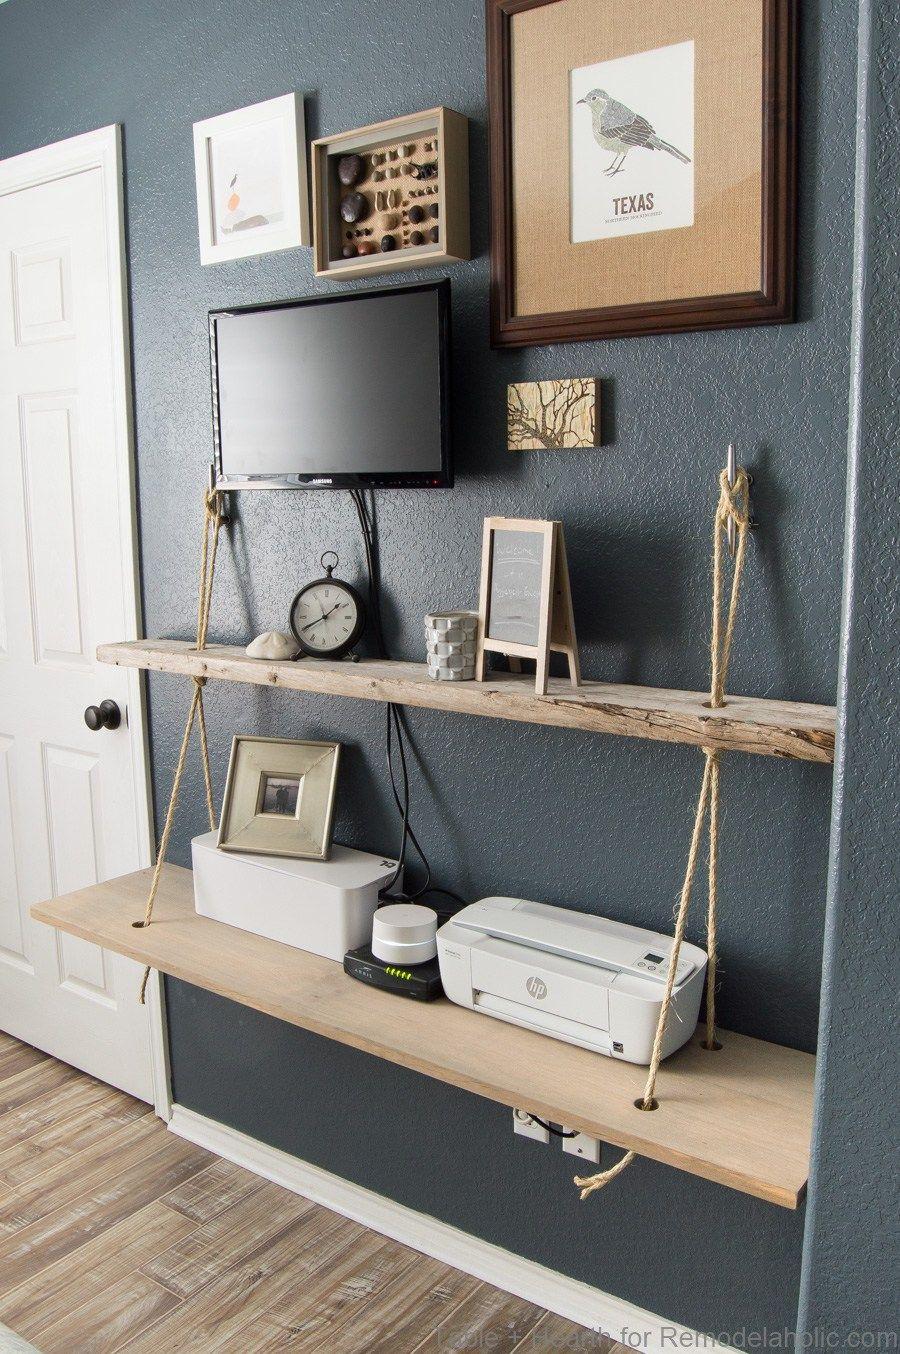 Diy Reclaimed Wood Floating Rope Shelf Tutorial How To Make An Easy Hanging Rope Shelves For Decor And Electro Nautical Shelves Diy Wood Shelves Rope Shelves